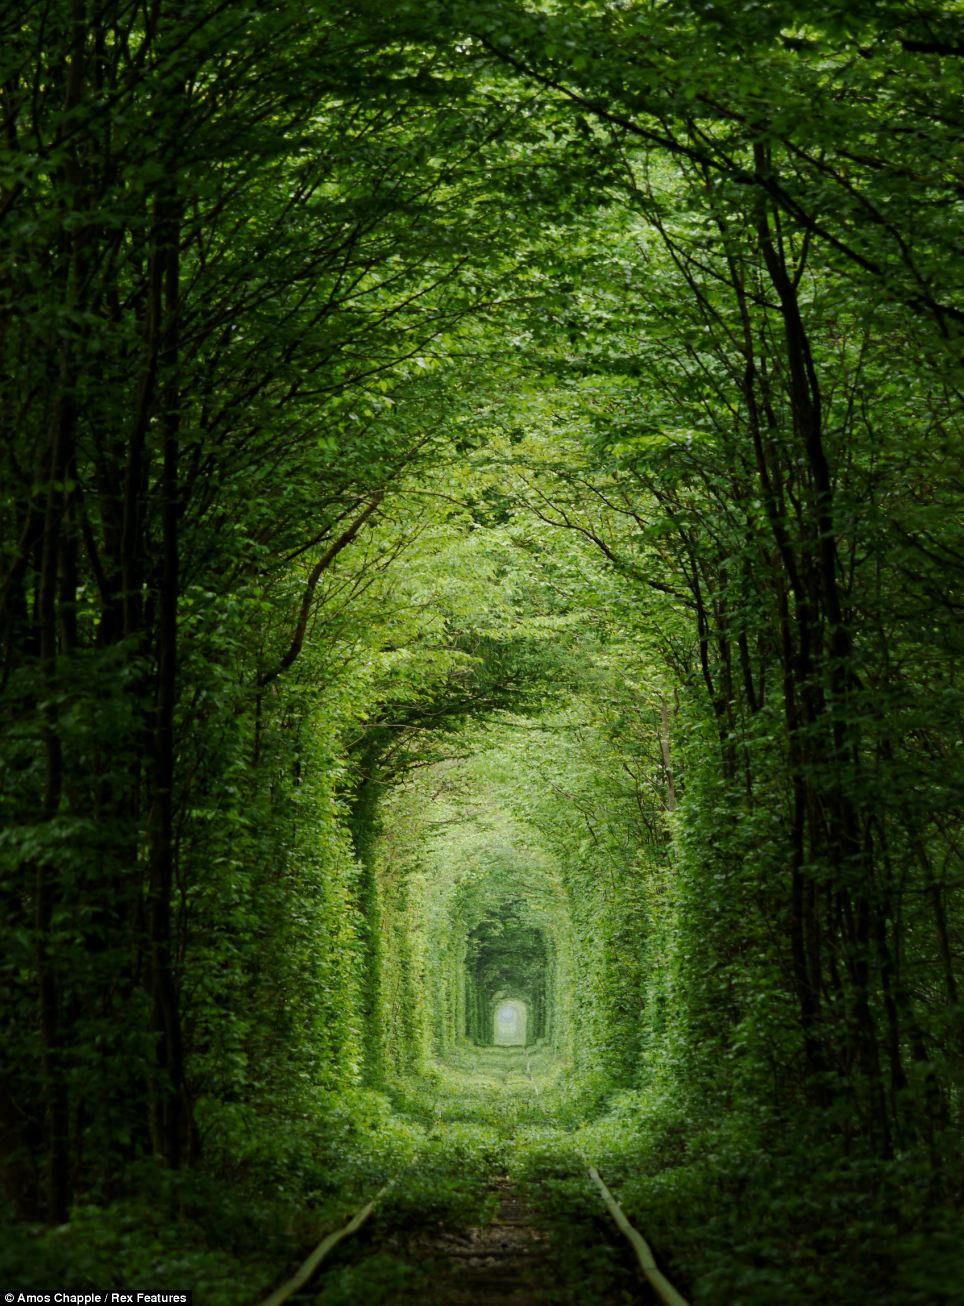 Deserted Places: The romantic 'Tunnel of Love' in Ukraine